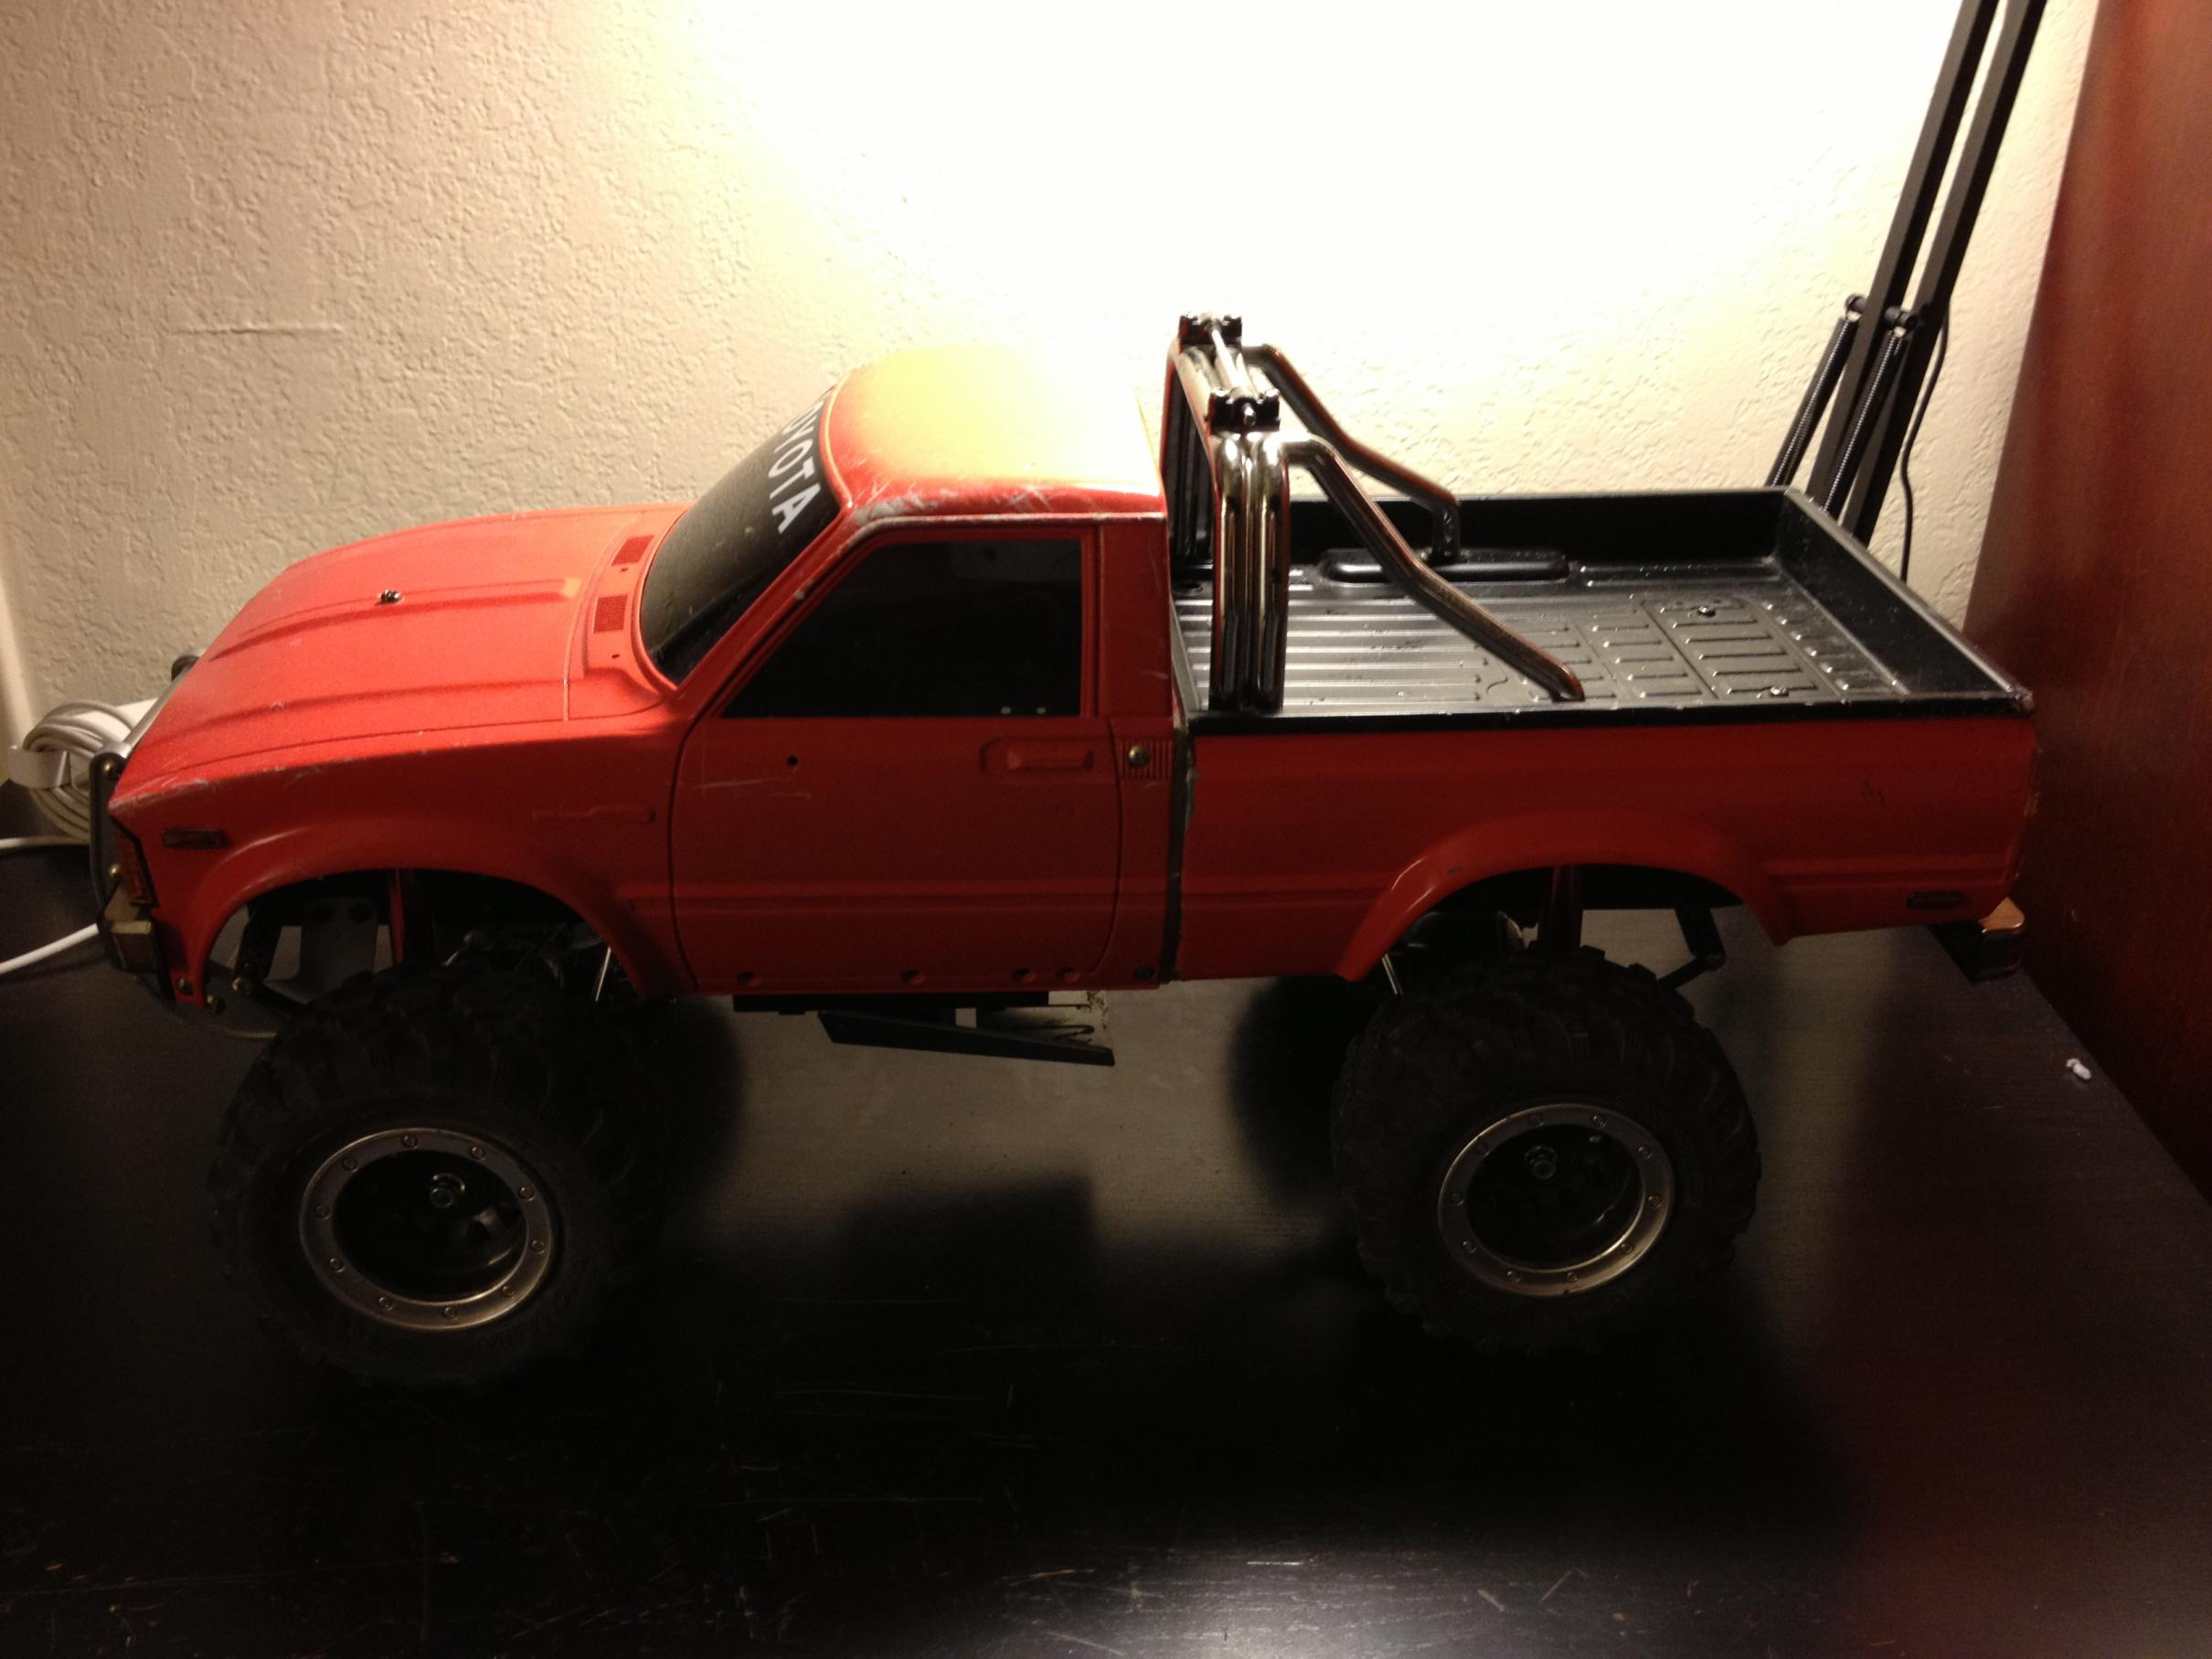 Fs tamiya toyota hilux high lift 3 speed img_1022 jpg